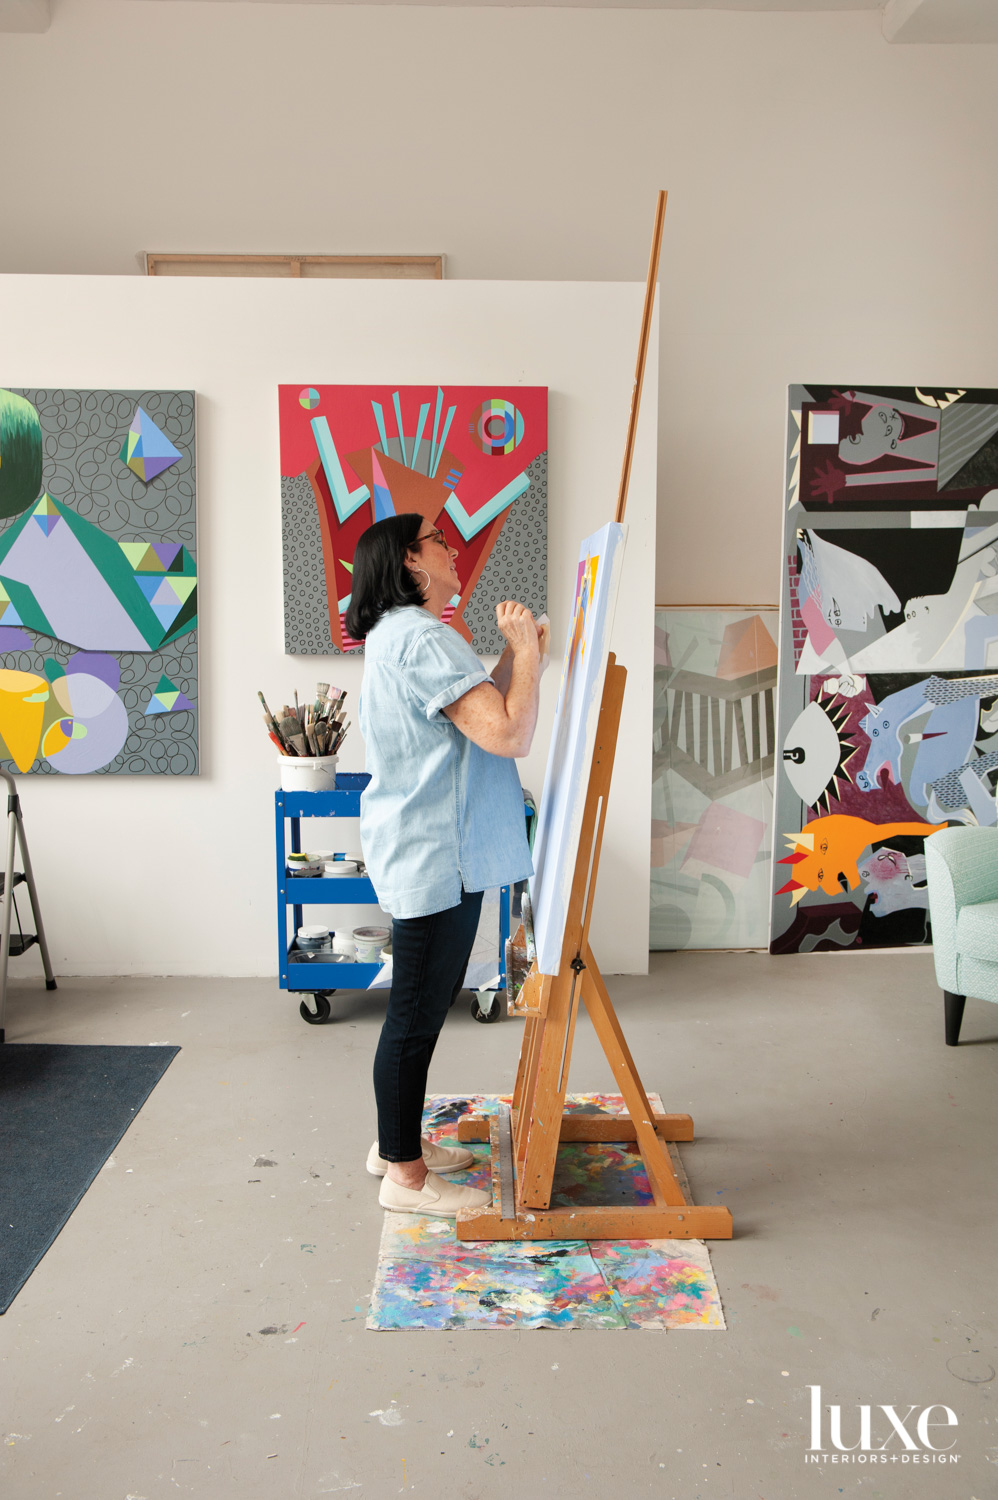 An artist in her studio working on a painting.